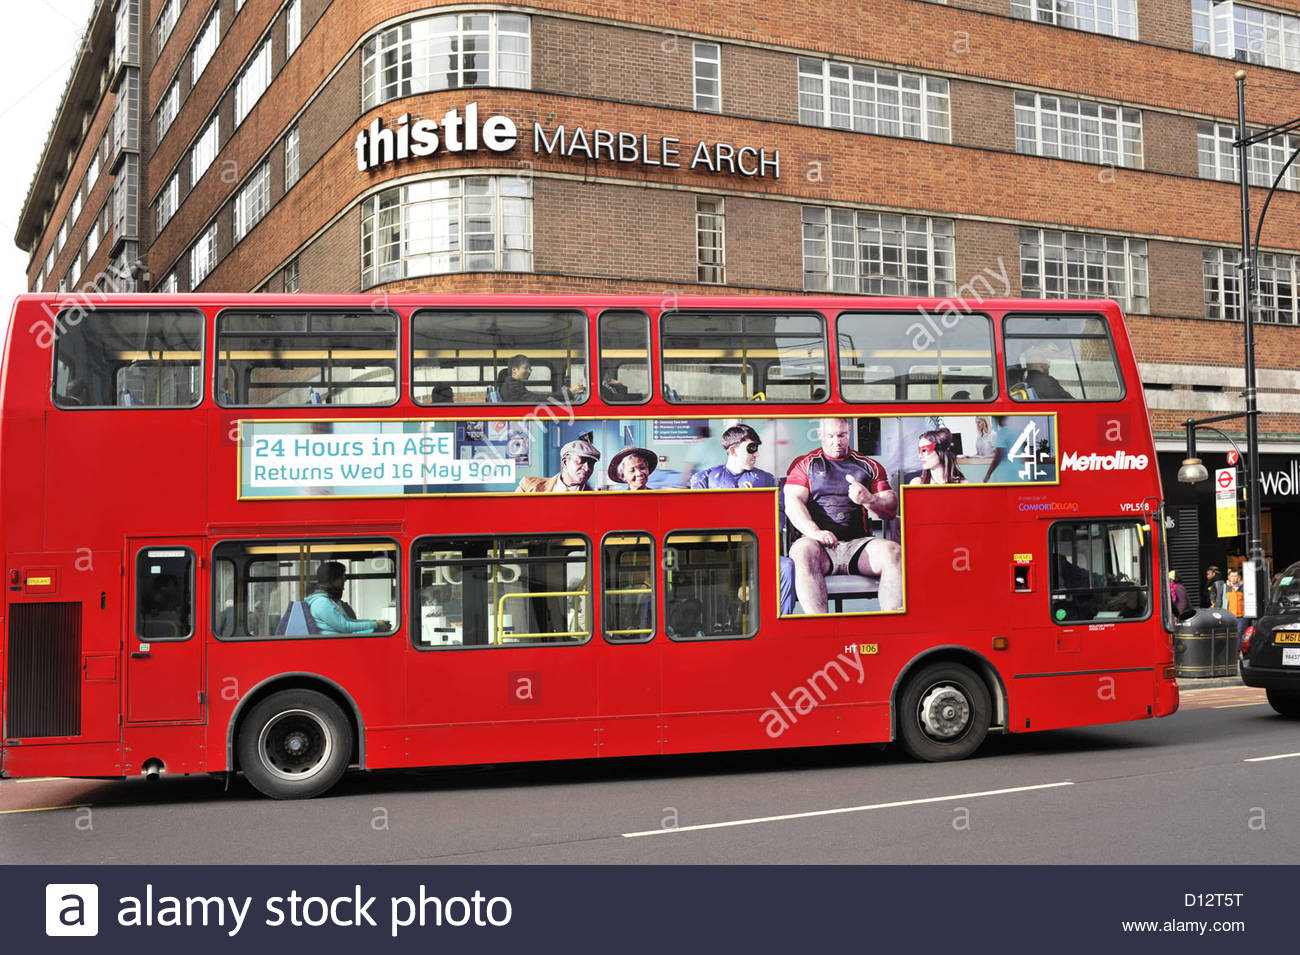 Red double-decker bus Marble Arch London UK - Stock Image